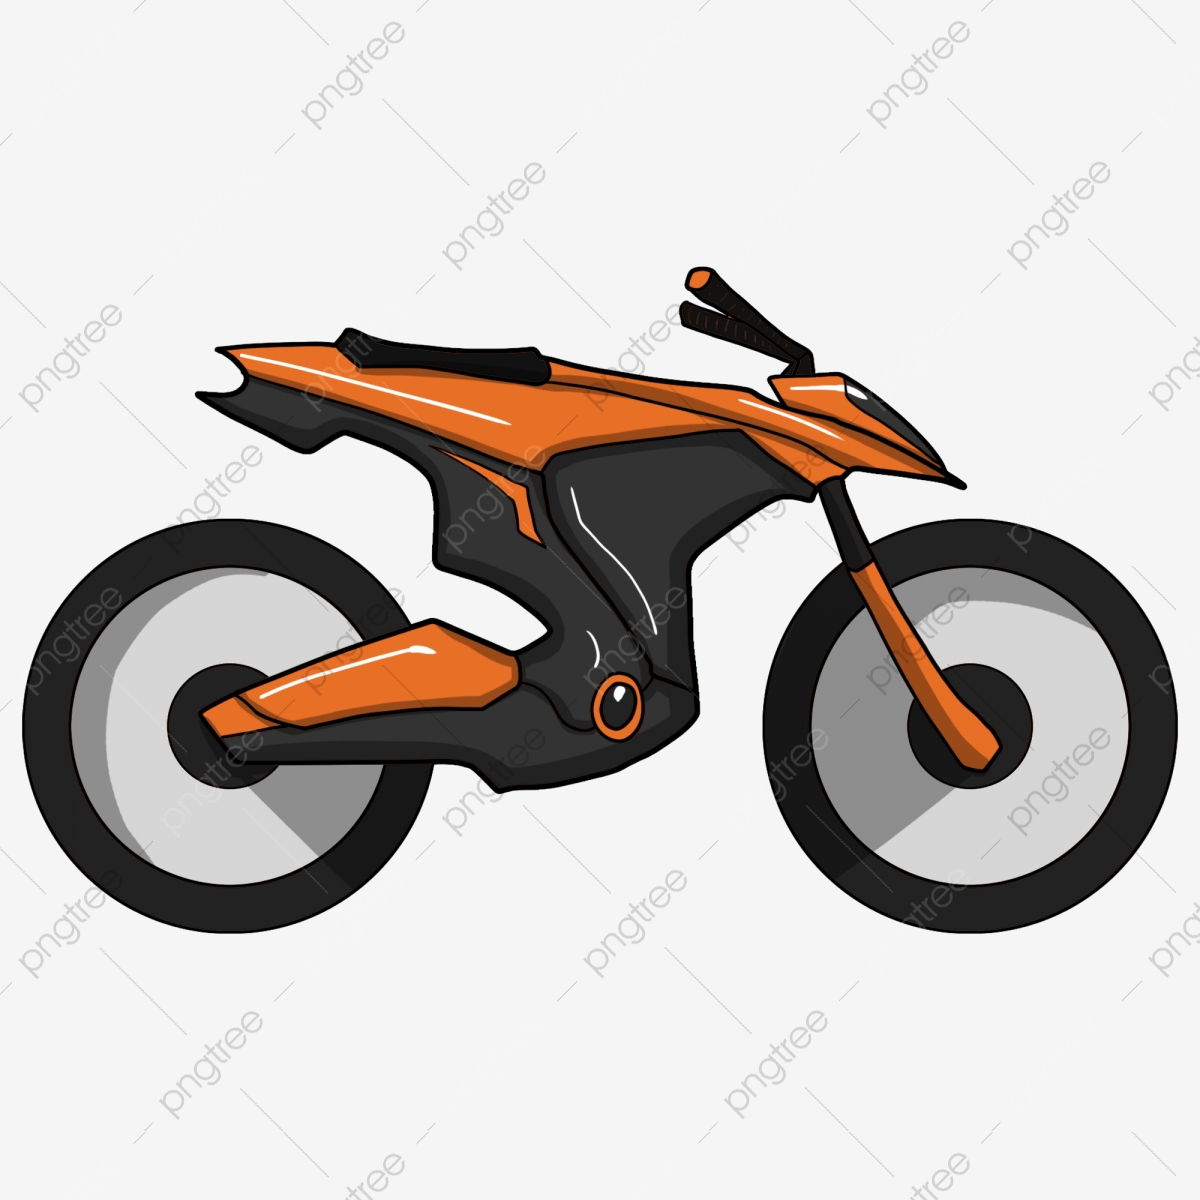 Car vehicle hand drawn. Motorcycle clipart orange